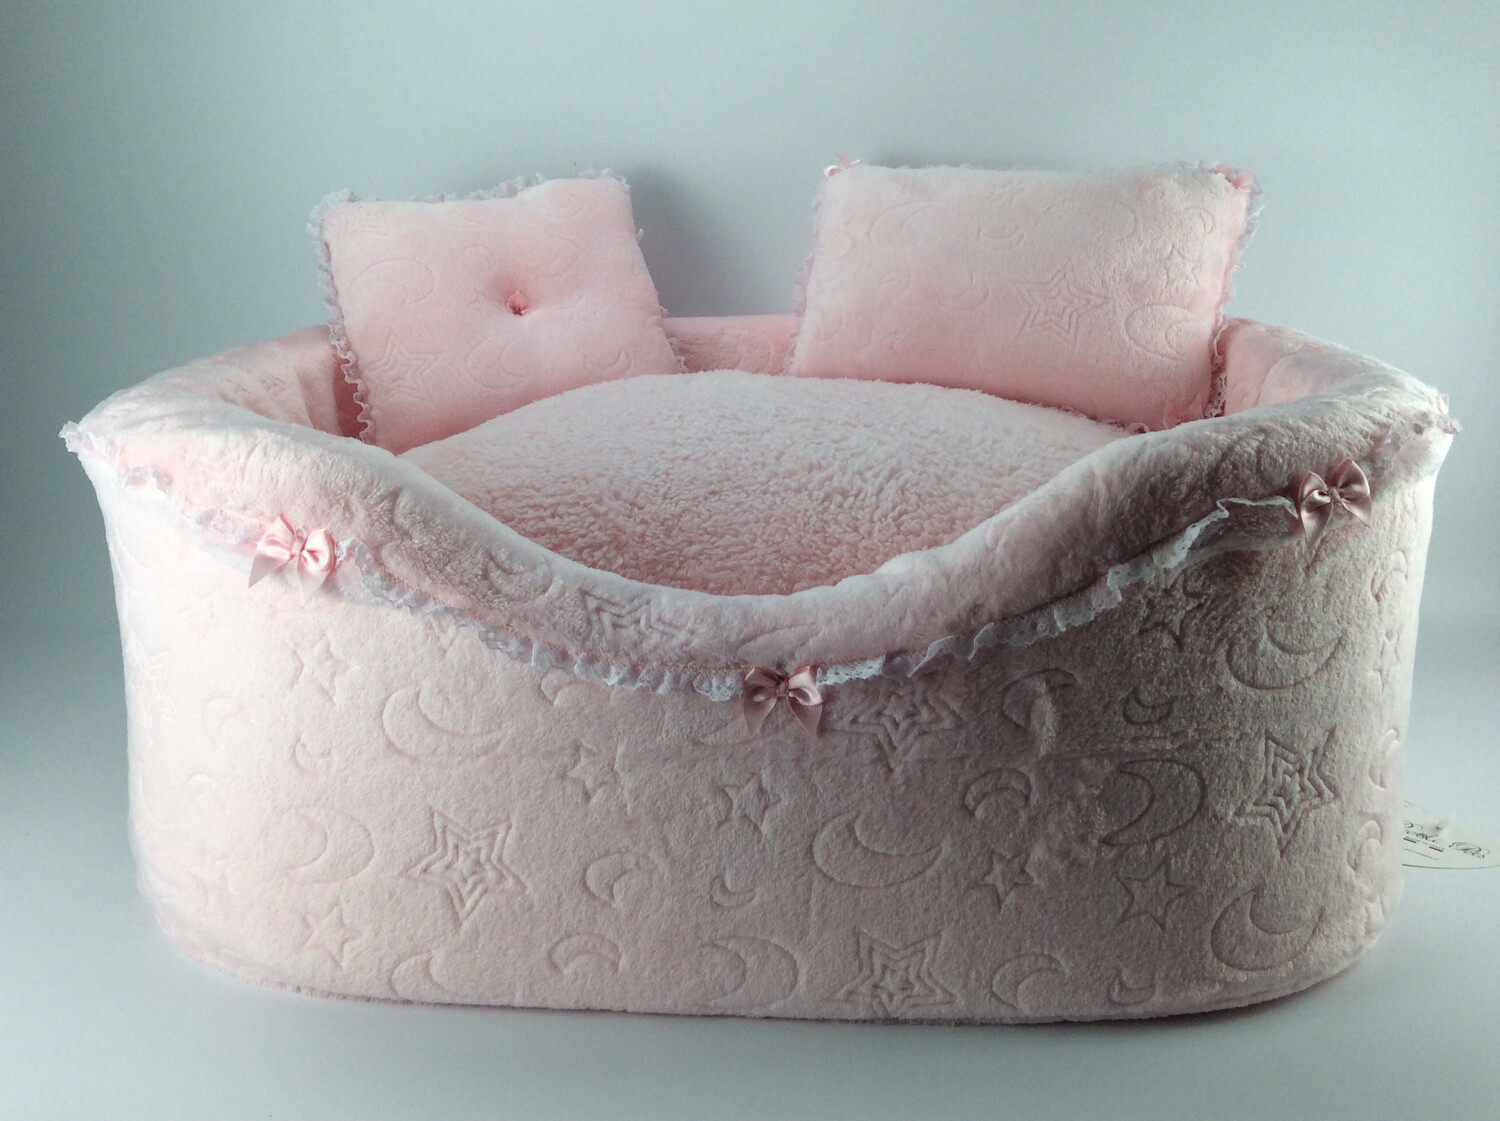 Full bed peluche pink moon